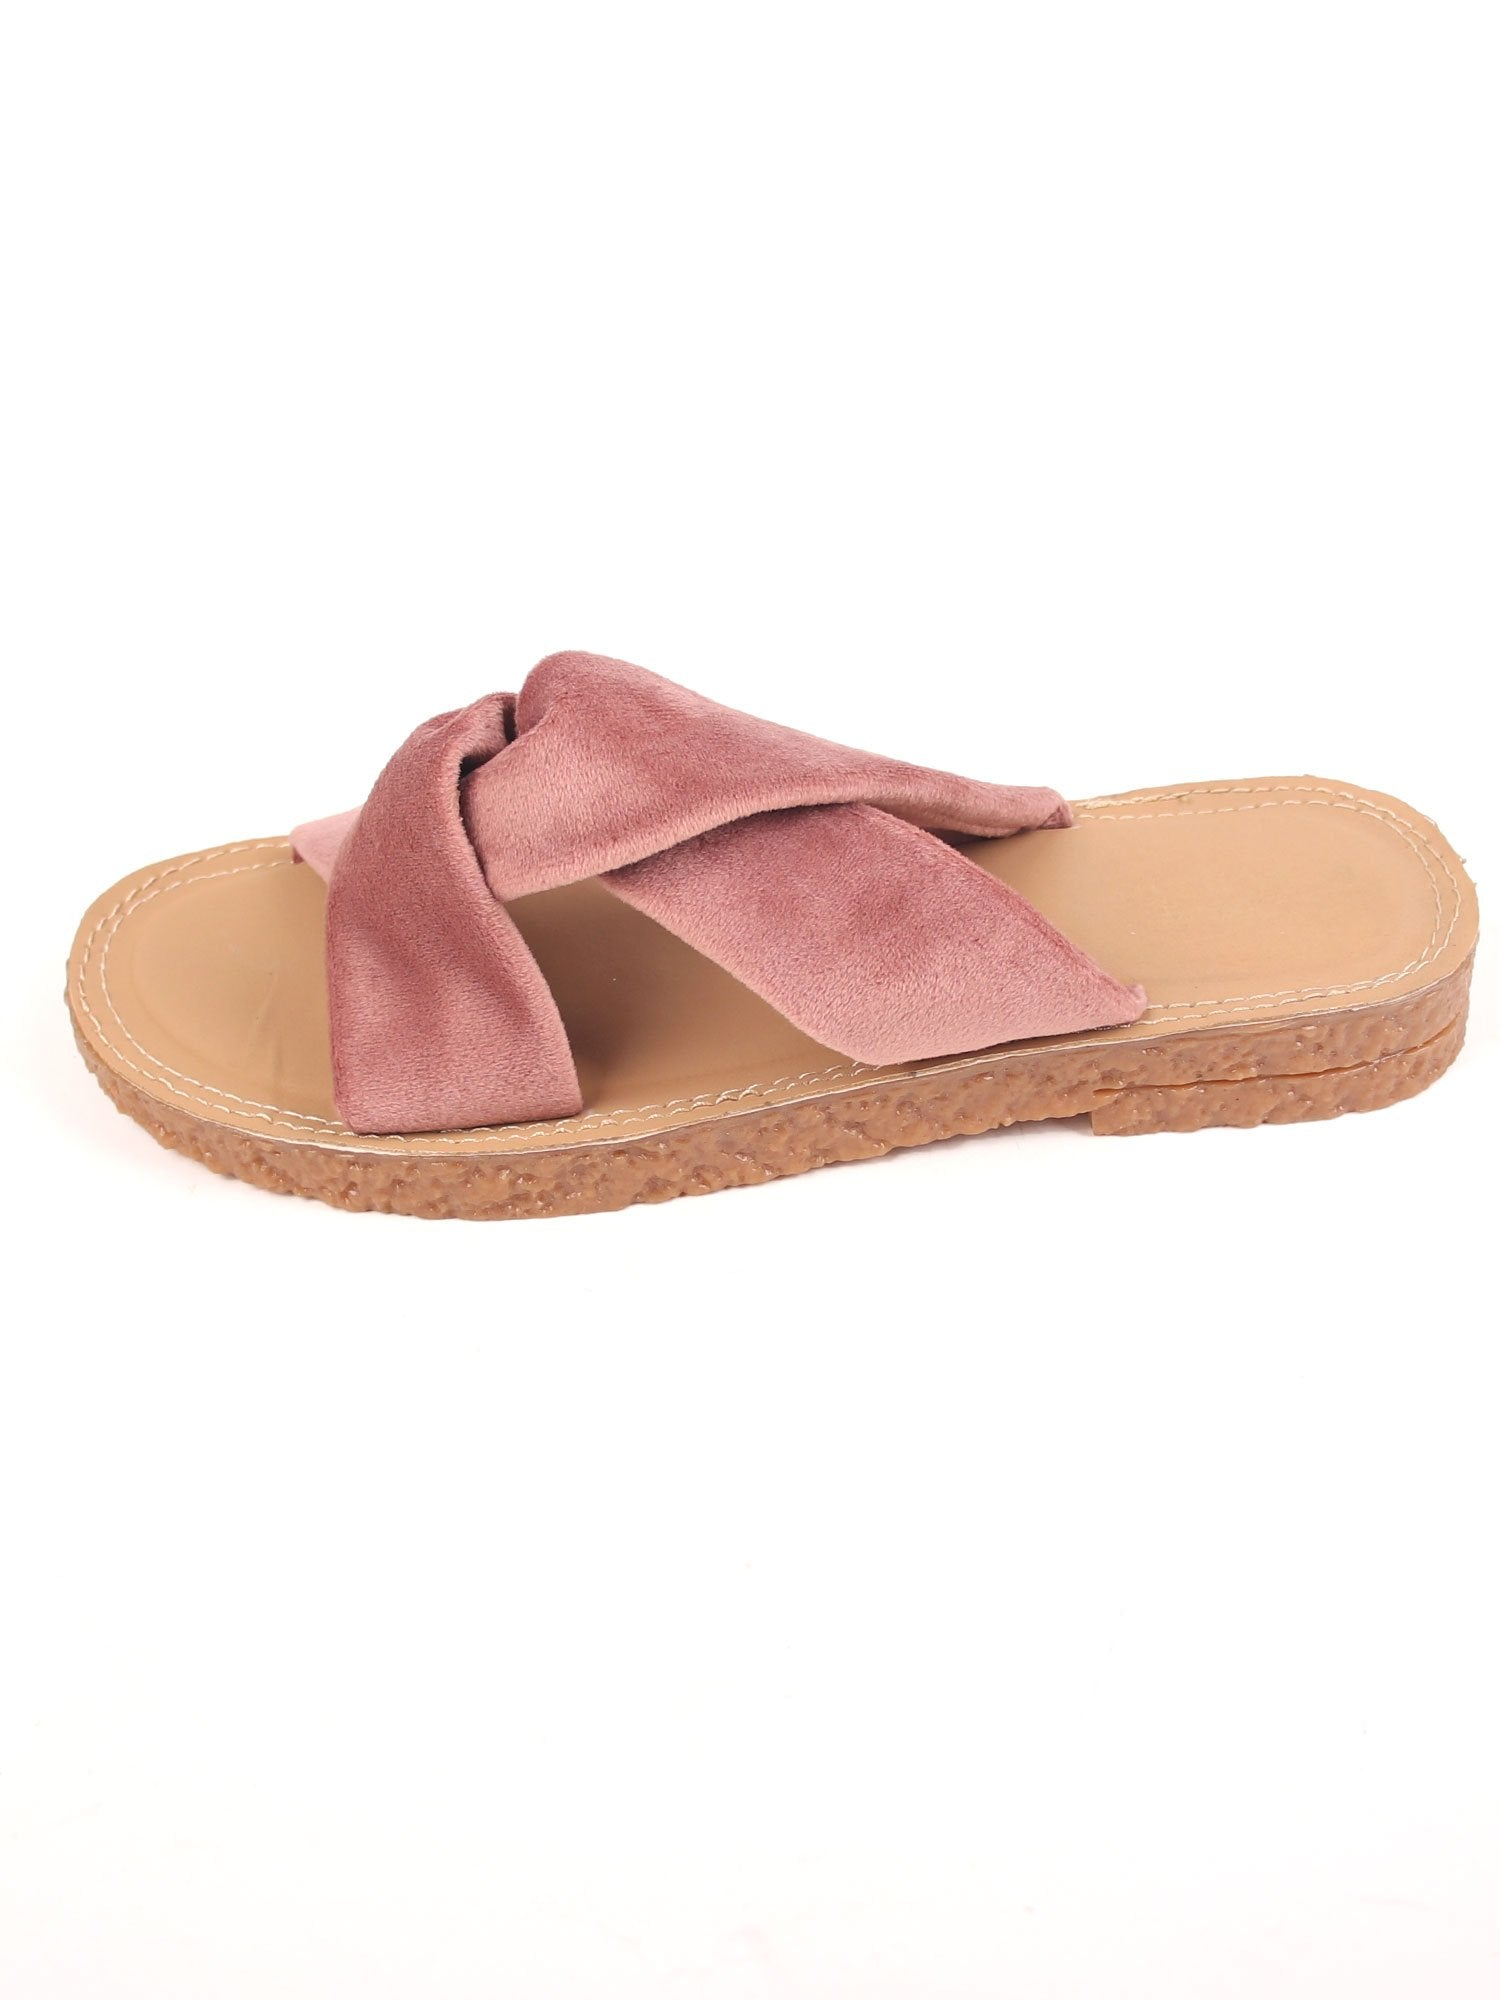 LOVE ME KNOT FLATS IN BLUSH PINK